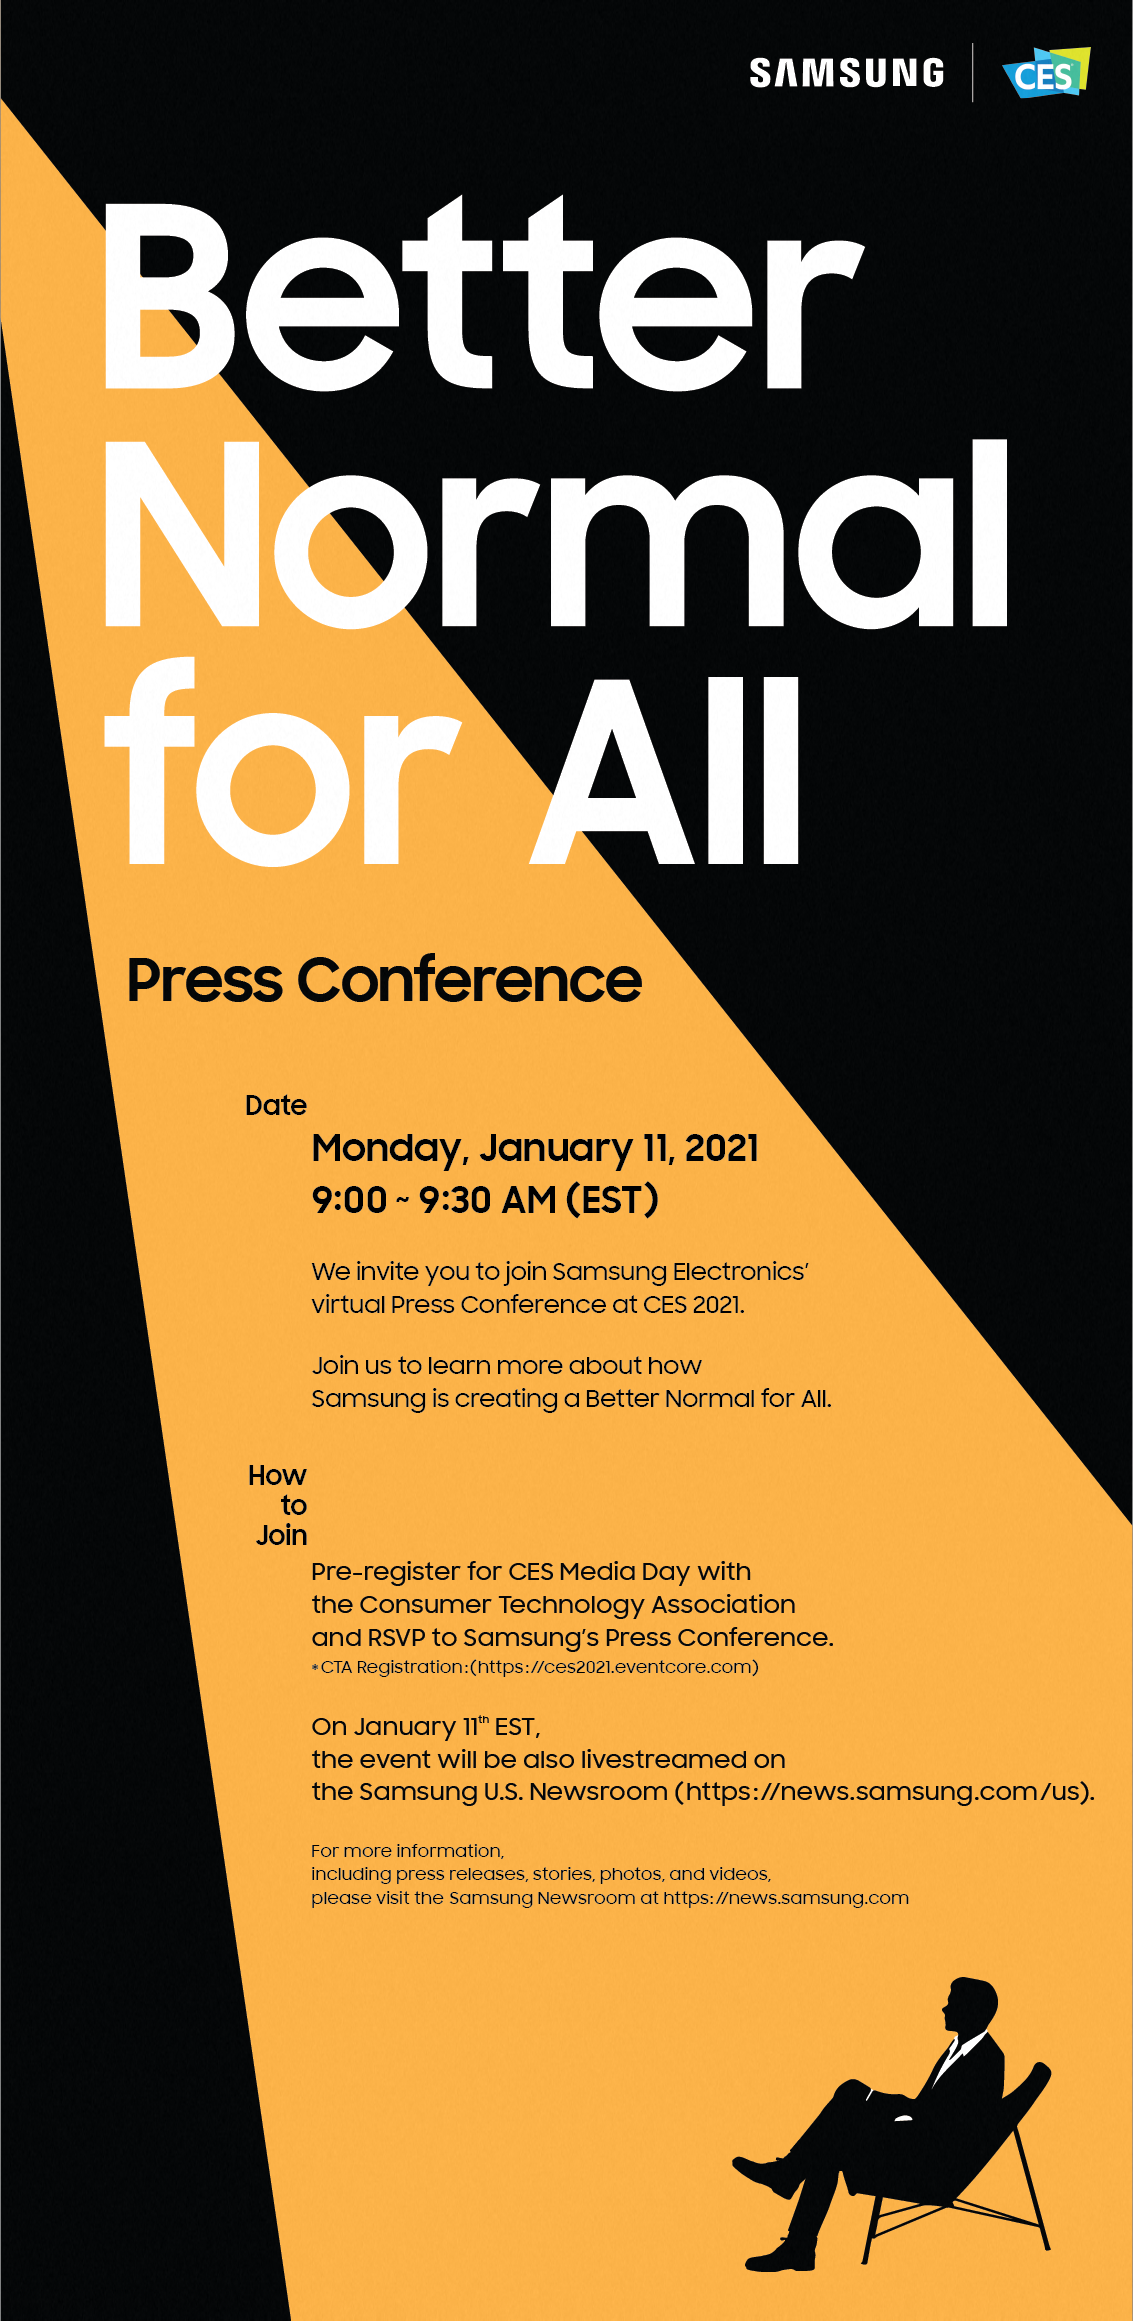 [Invitation] A 'Better Normal for All': Samsung's CES 2021 Press Conference